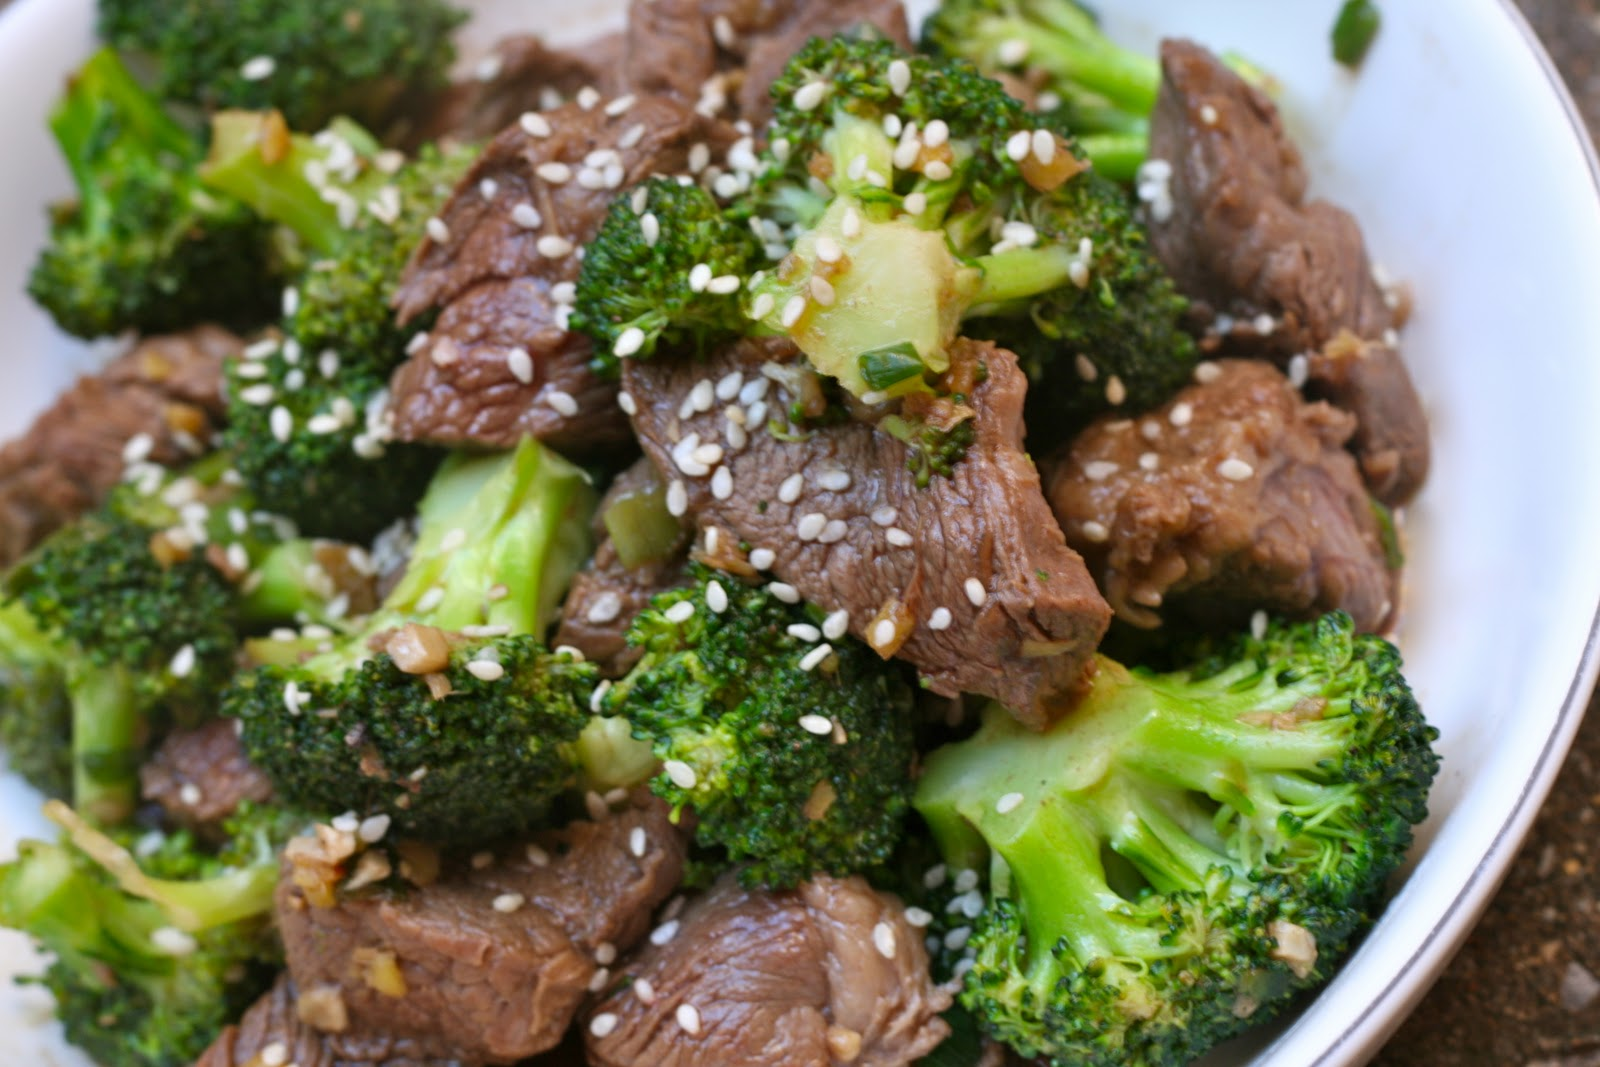 ... will be sorry if you make this paleo version of beef and broccoli